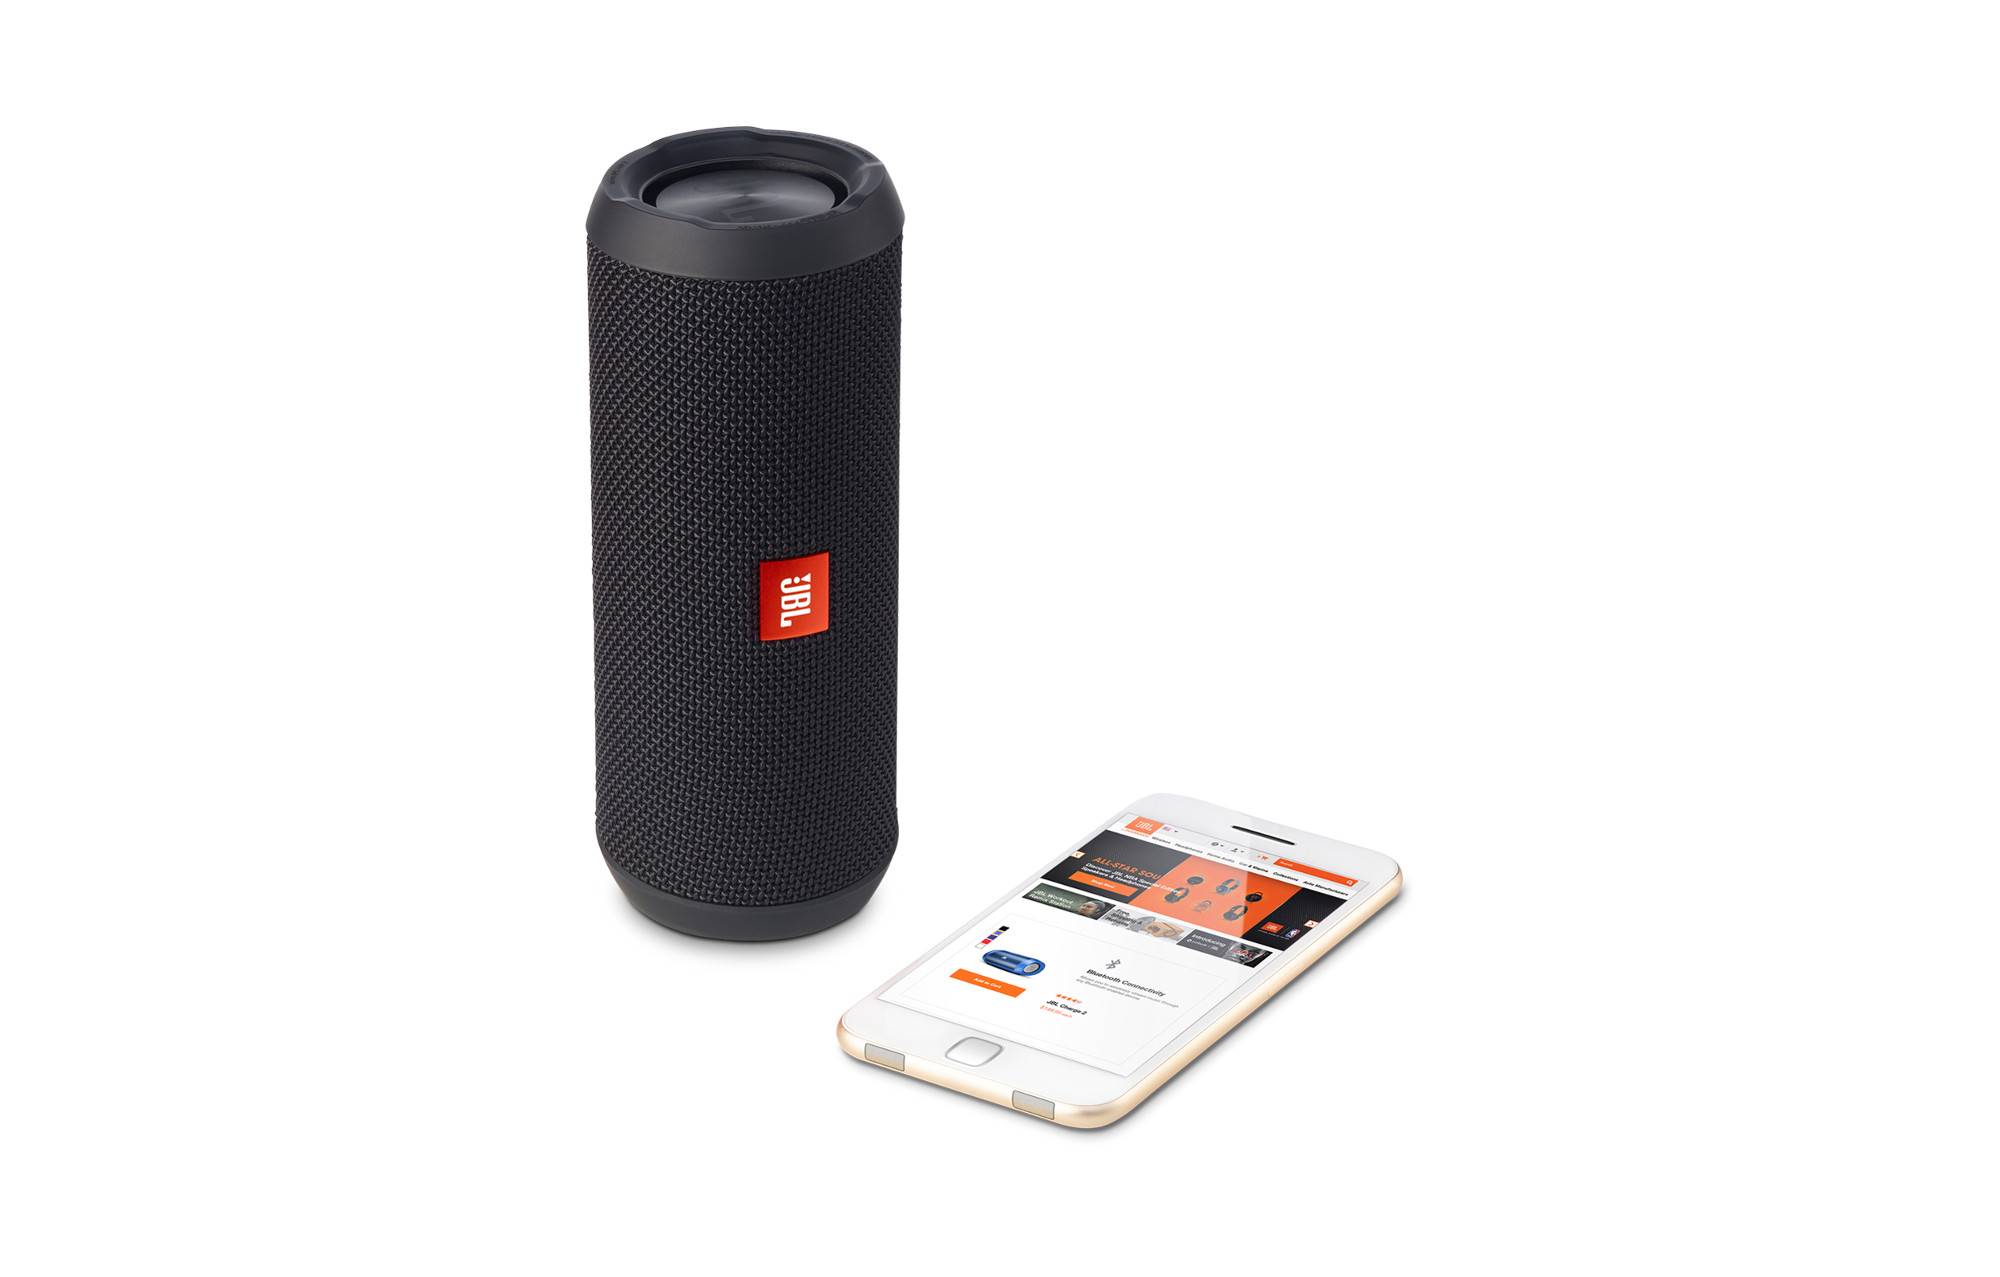 enceinte bluetooth jbl nomade flip 3 noir. Black Bedroom Furniture Sets. Home Design Ideas